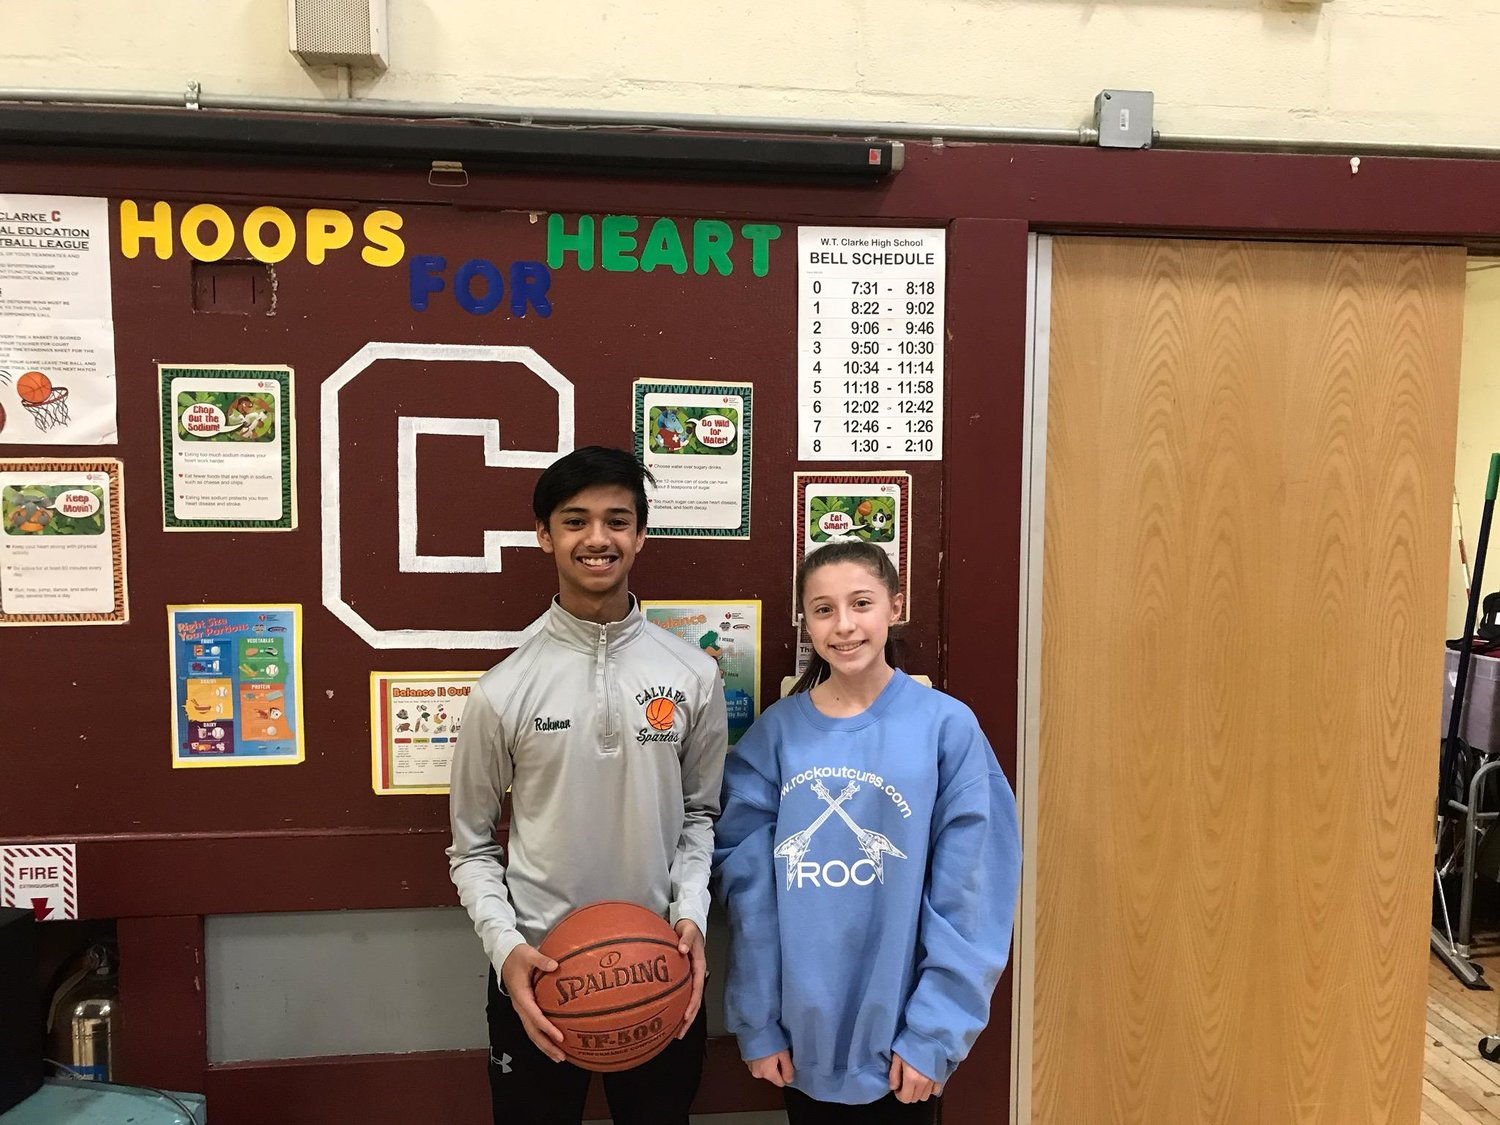 W.T. Clarke Middle School eighth-grade students Tyseer Rahman, left, and Sophia Aprea, right, were among the class winners of a game of knock out during the school's Hoops for Heart tournament from Jan. 23 to Jan. 25.